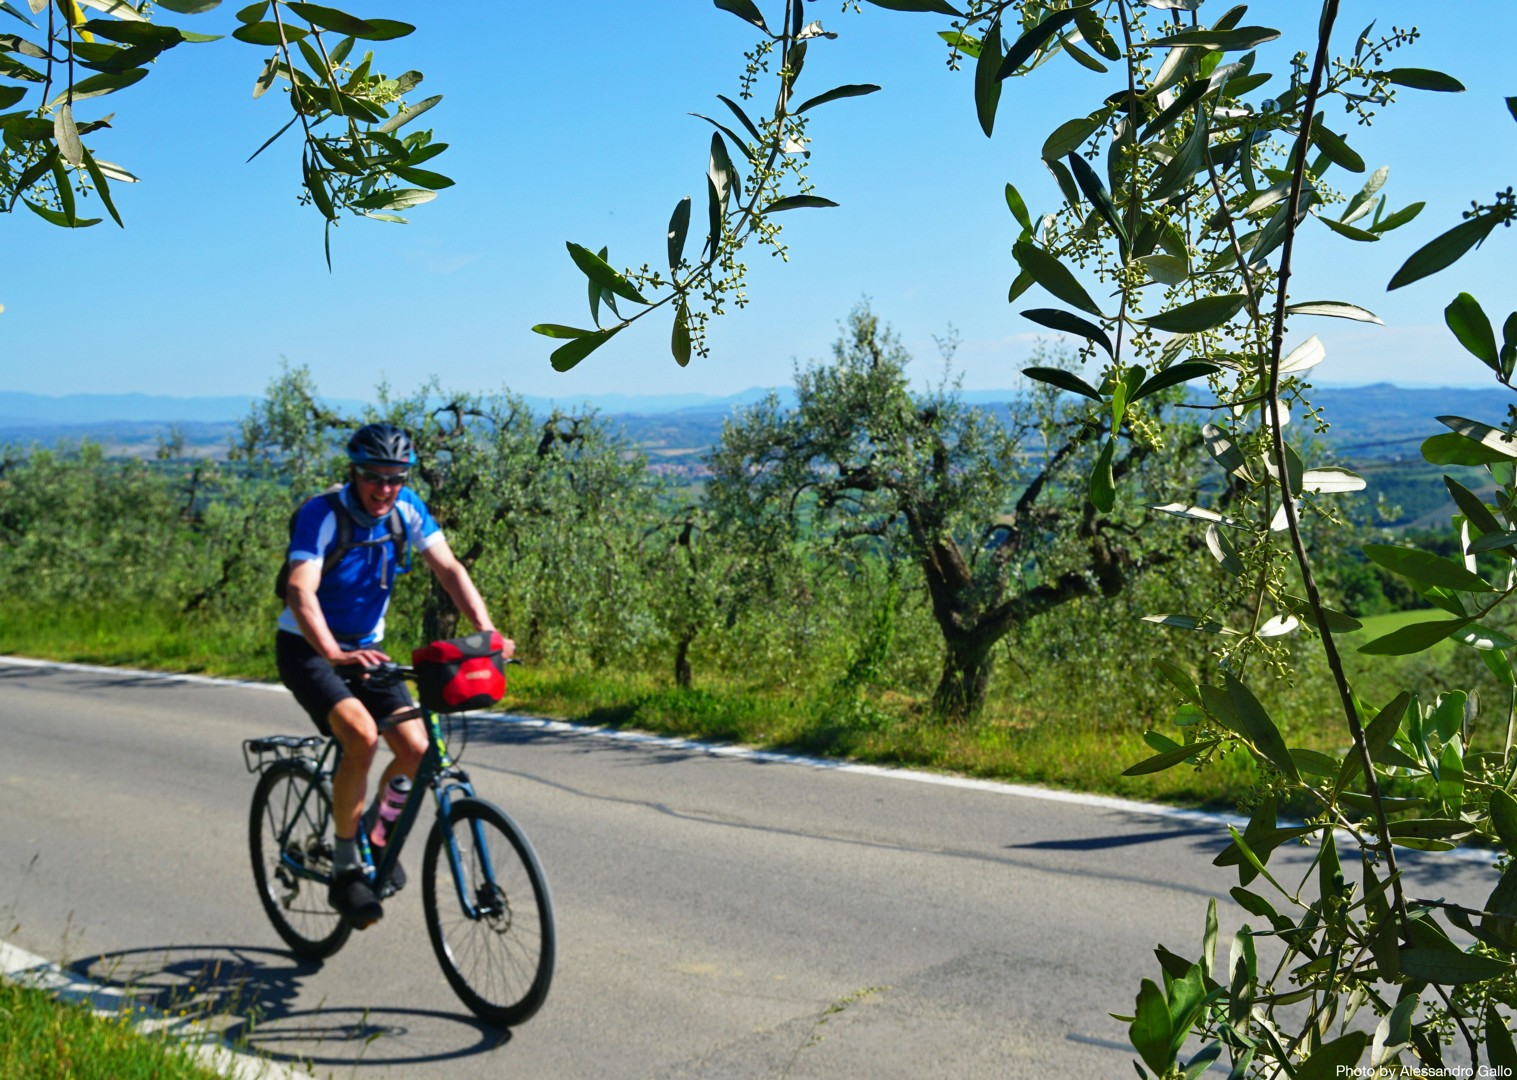 leisure-cycling-holiday-in-umbria-italy.jpg - Italy - Green Heart of Umbria - Self-Guided Leisure Cycling Holiday - Leisure Cycling